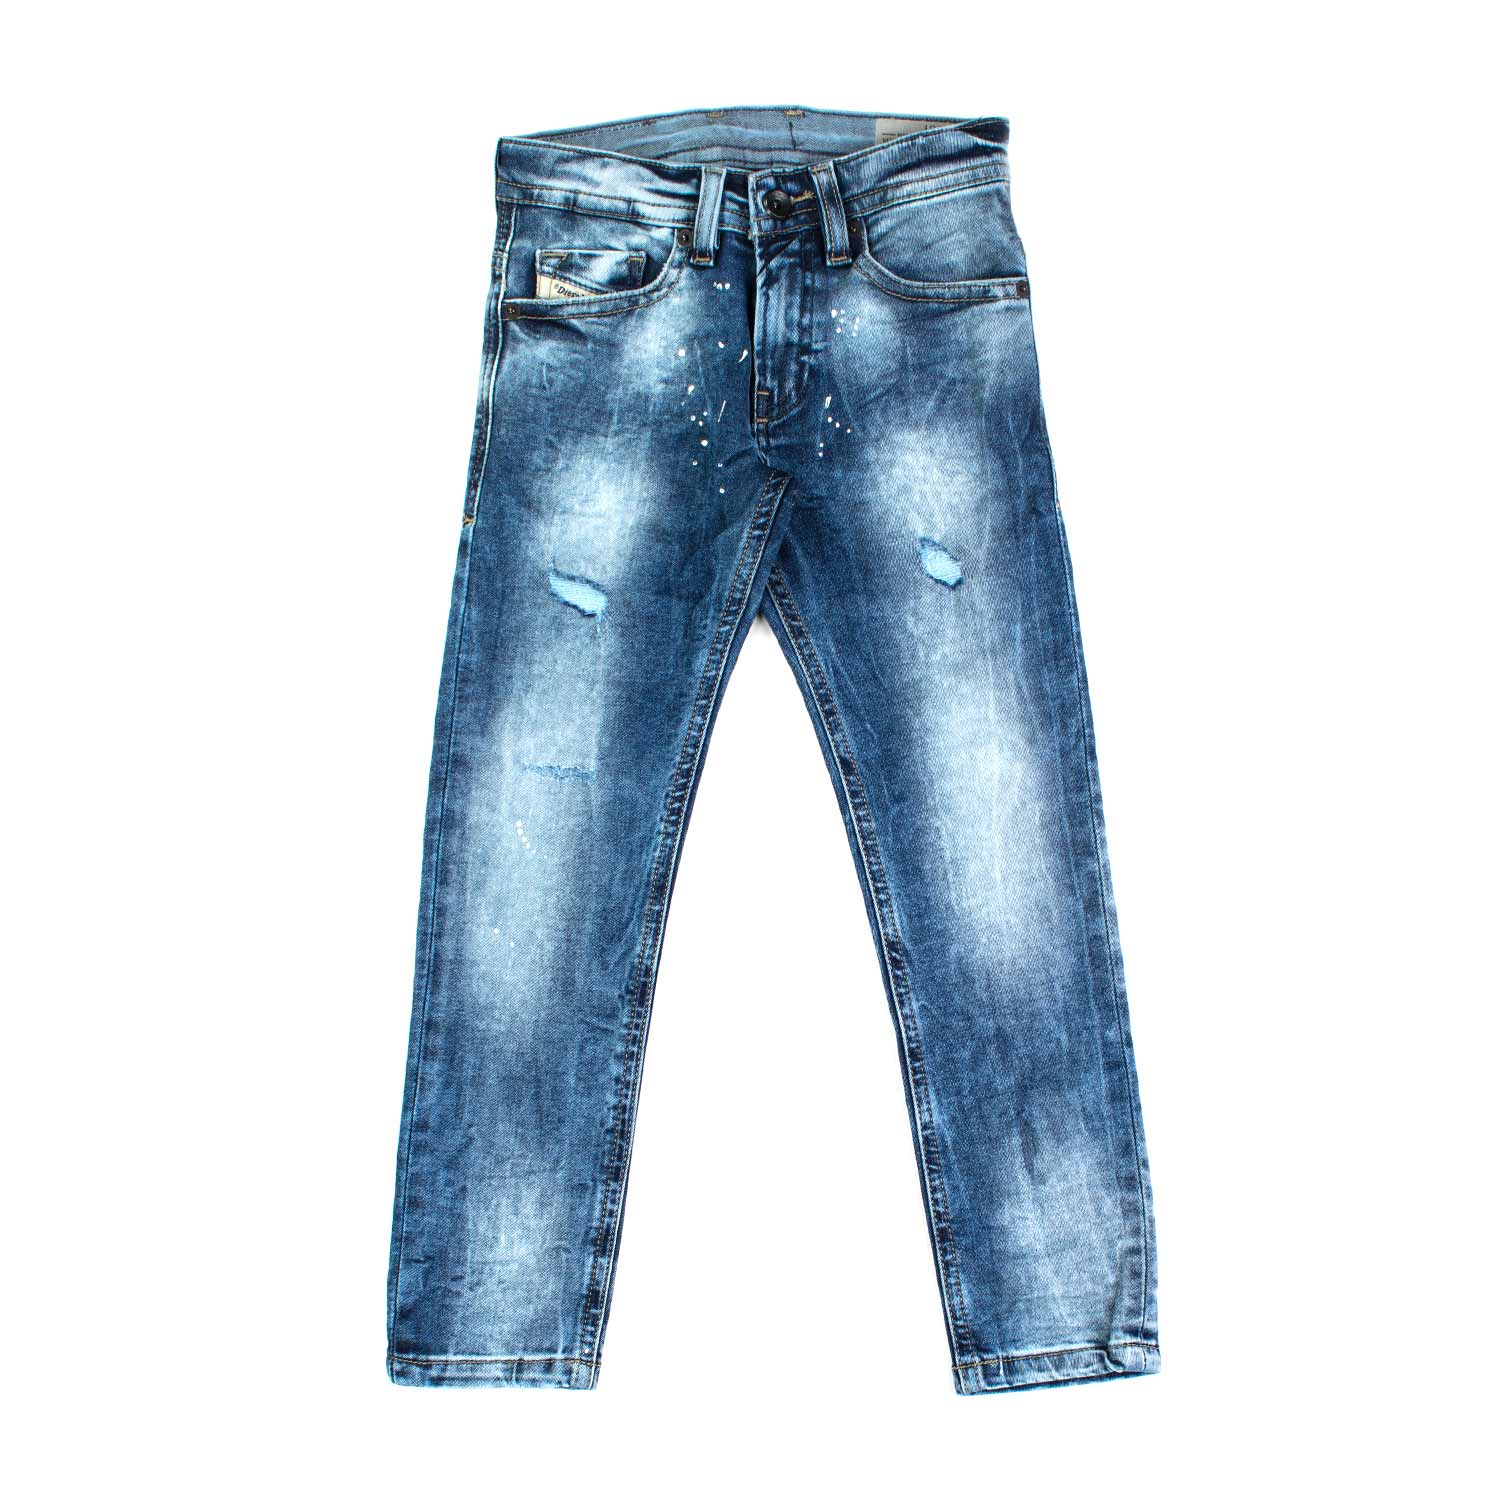 9f2e78ff15 Jeans Stone Washed Bambino Teen